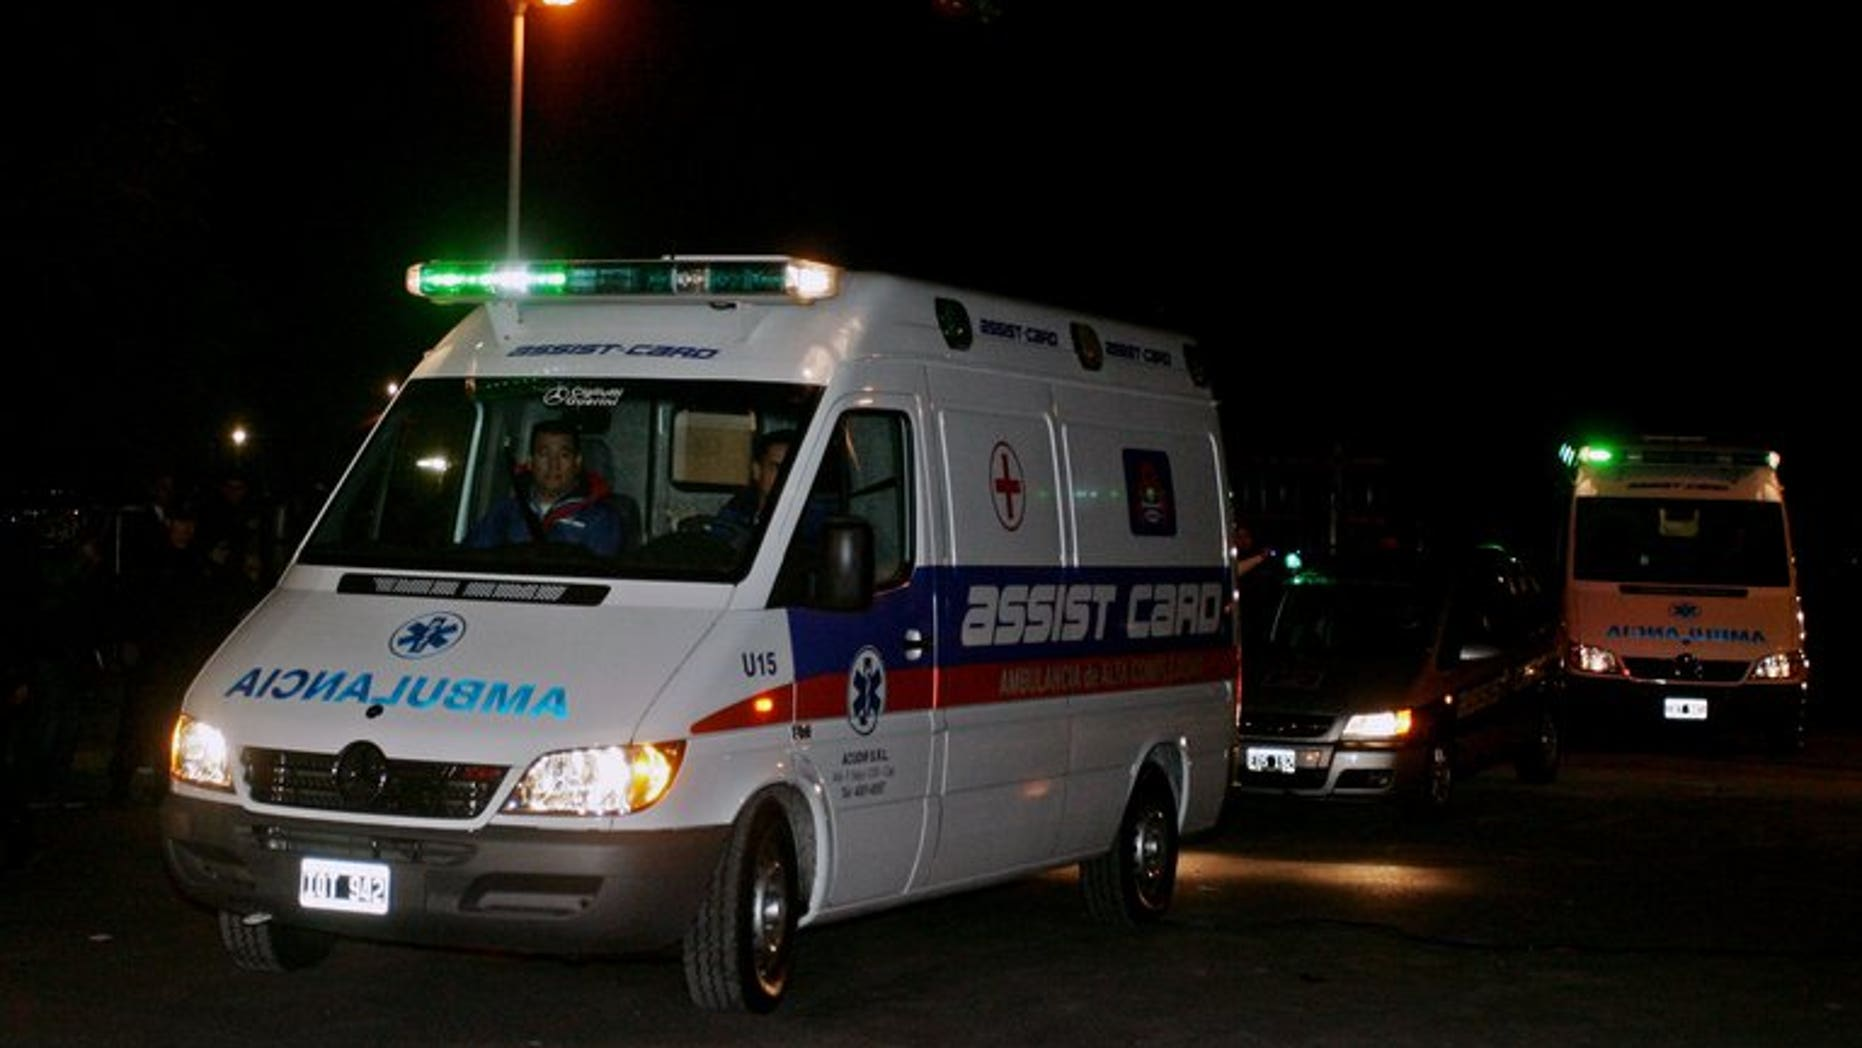 An ambulance is seen in Buenos Aires, Argentina on June 7, 2010. A powerful blast ripped through a ten-story building in Argentina's third largest city Tuesday, setting it ablaze and leaving at least one dead and 15 injured.